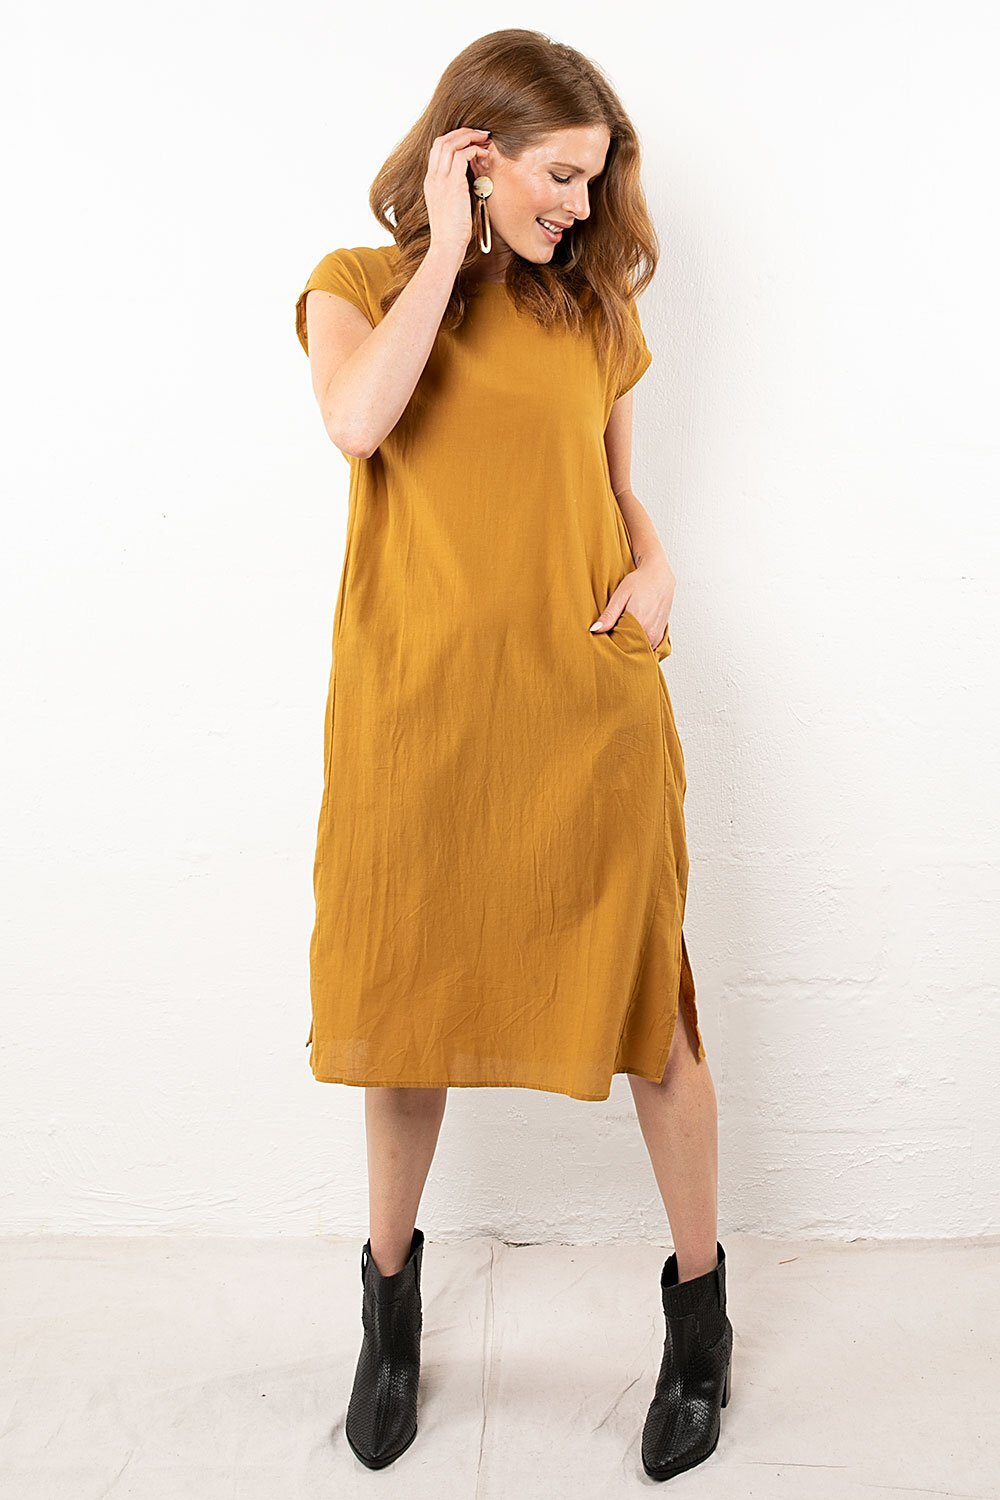 Favor The Kind Ochre Flowy Mini-Dress ($46) - This dress is perfectly foolproof. Gorgeous ochre shade, check. Edgy side slits, check. POCKETS, check. Wear it with a thick duster cardigan and printed ankle boots for a solid fall look.